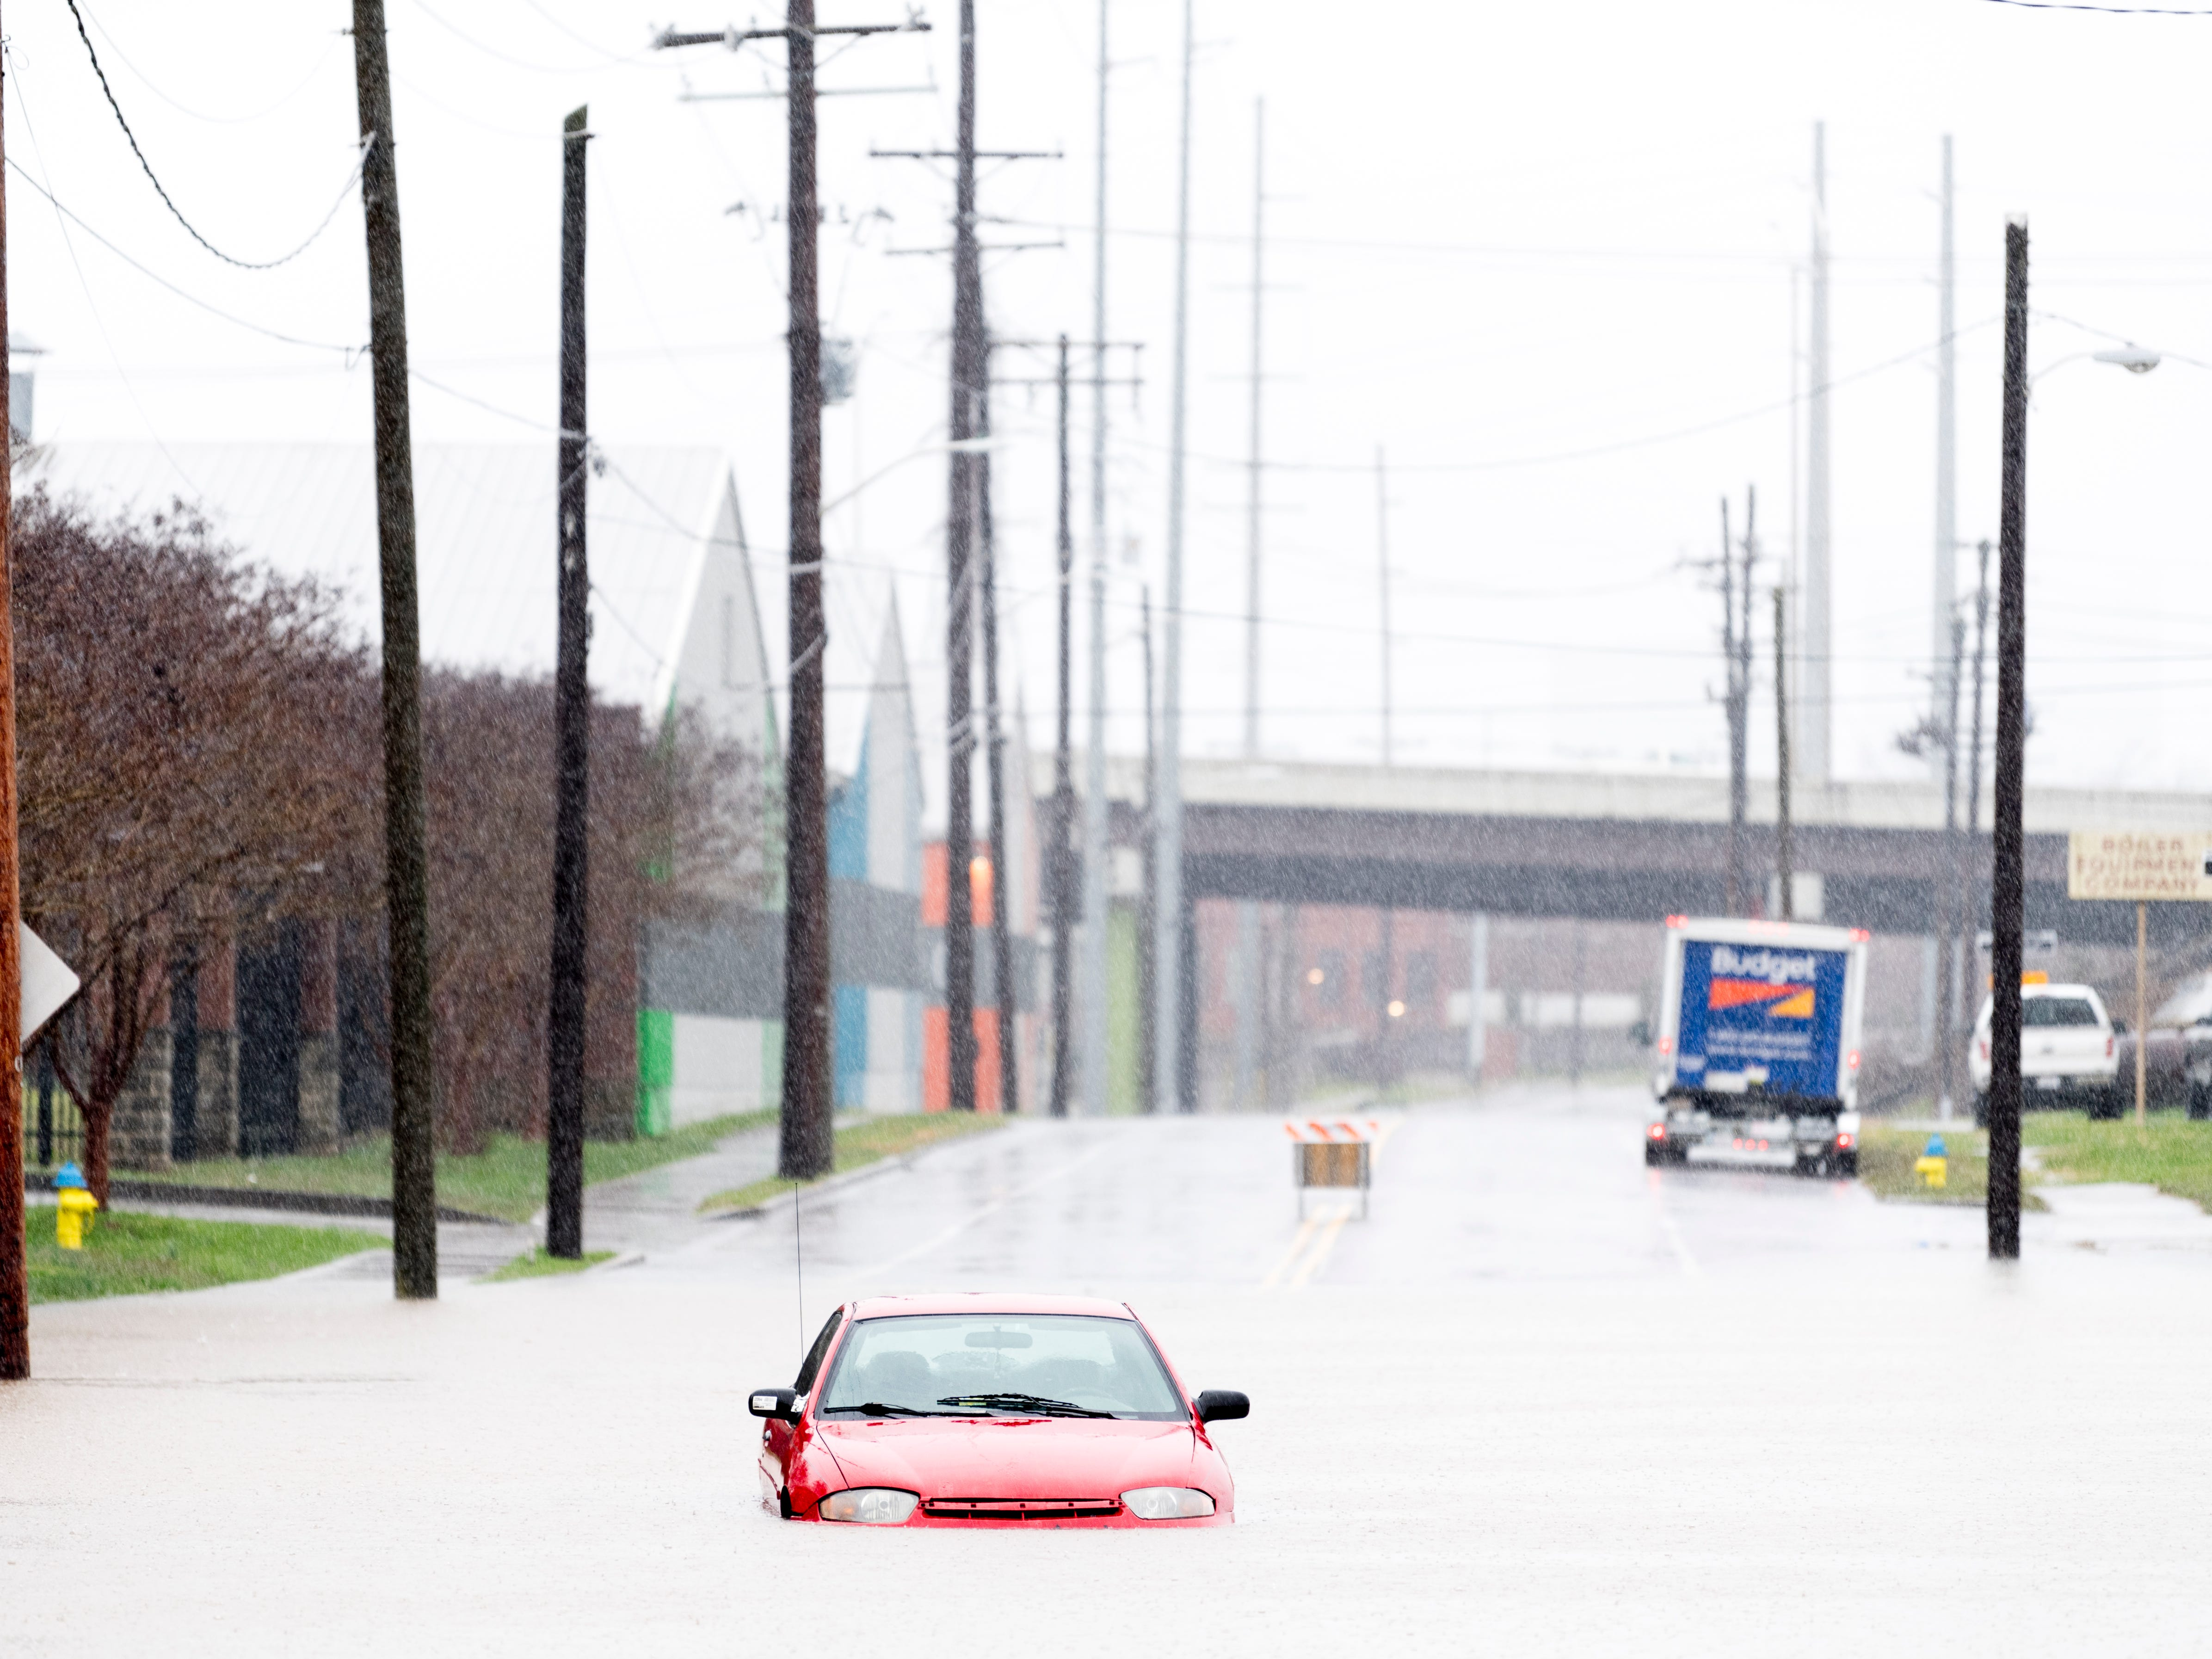 A Chevrolet Cavalier is seen stranded along a flooded portion of North 6th Ave. during a heavy rainstorm in Knoxville, Tennessee on Saturday, February 23, 2019. The Knoxville area could see between 2 and 3 inches through the weekend.